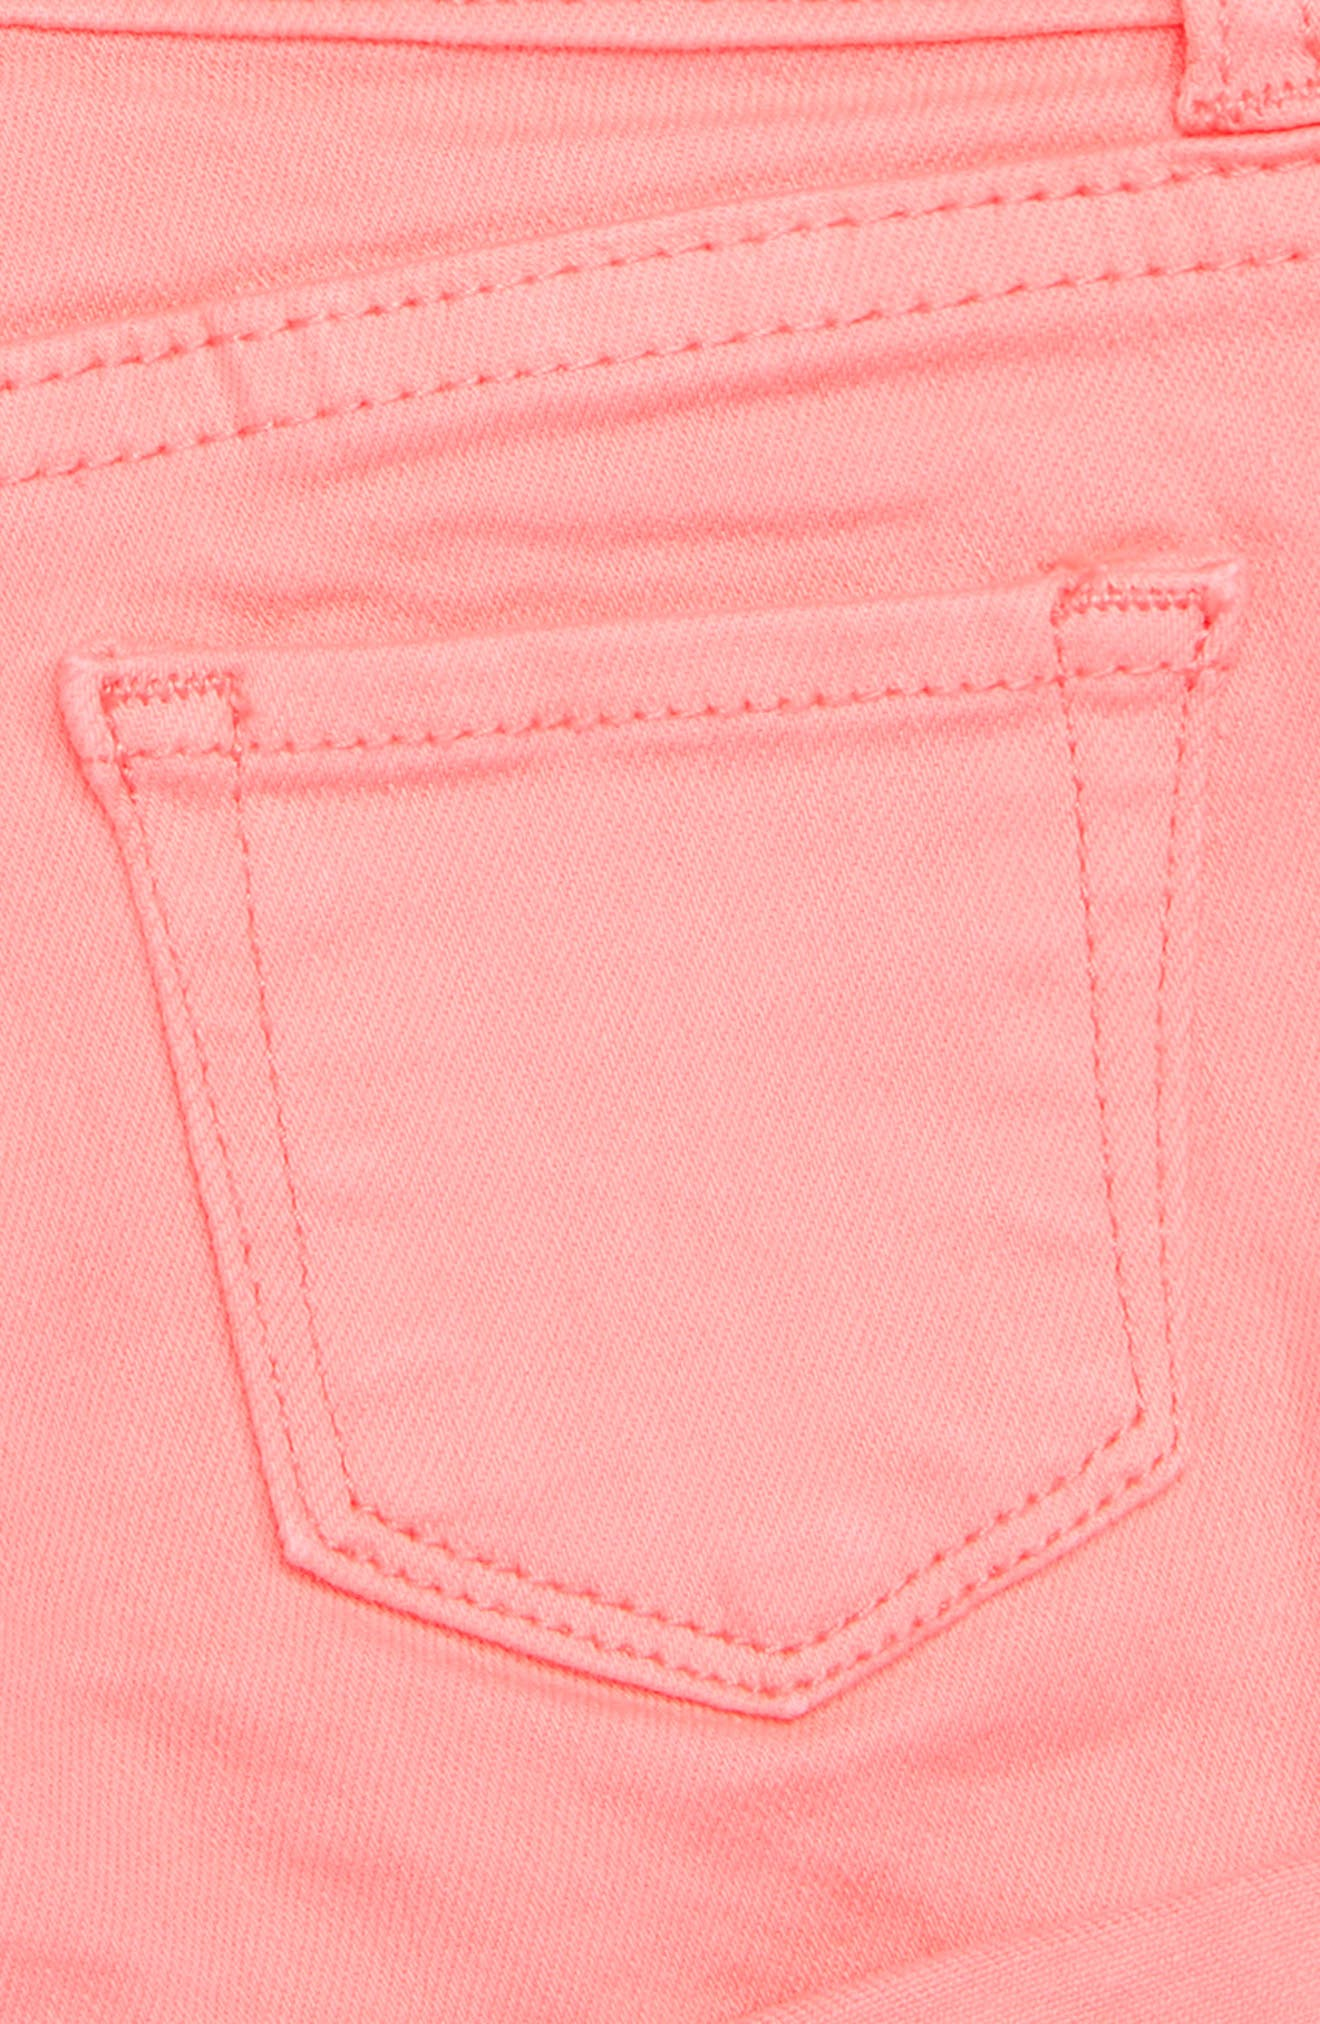 Griffin Stretch Cotton Shorts,                             Alternate thumbnail 3, color,                             950